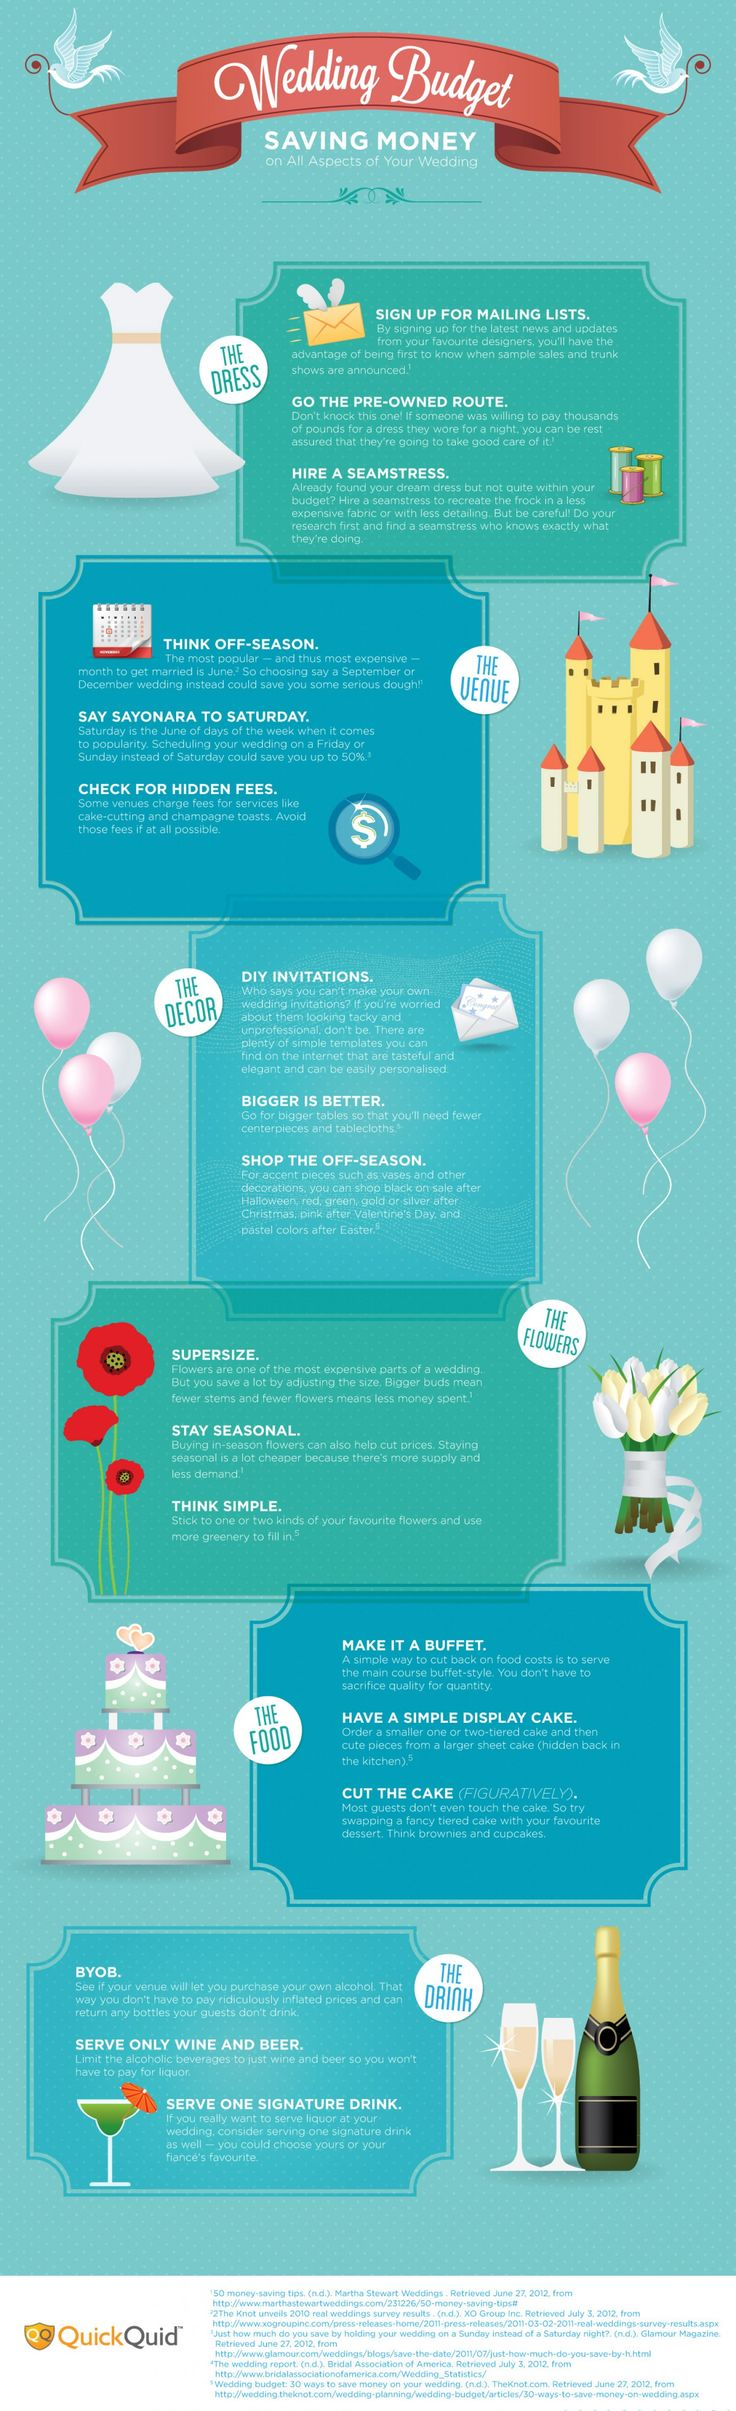 Save money #budgetweddinginfographics #weddingtips http://brieonabudget.com/